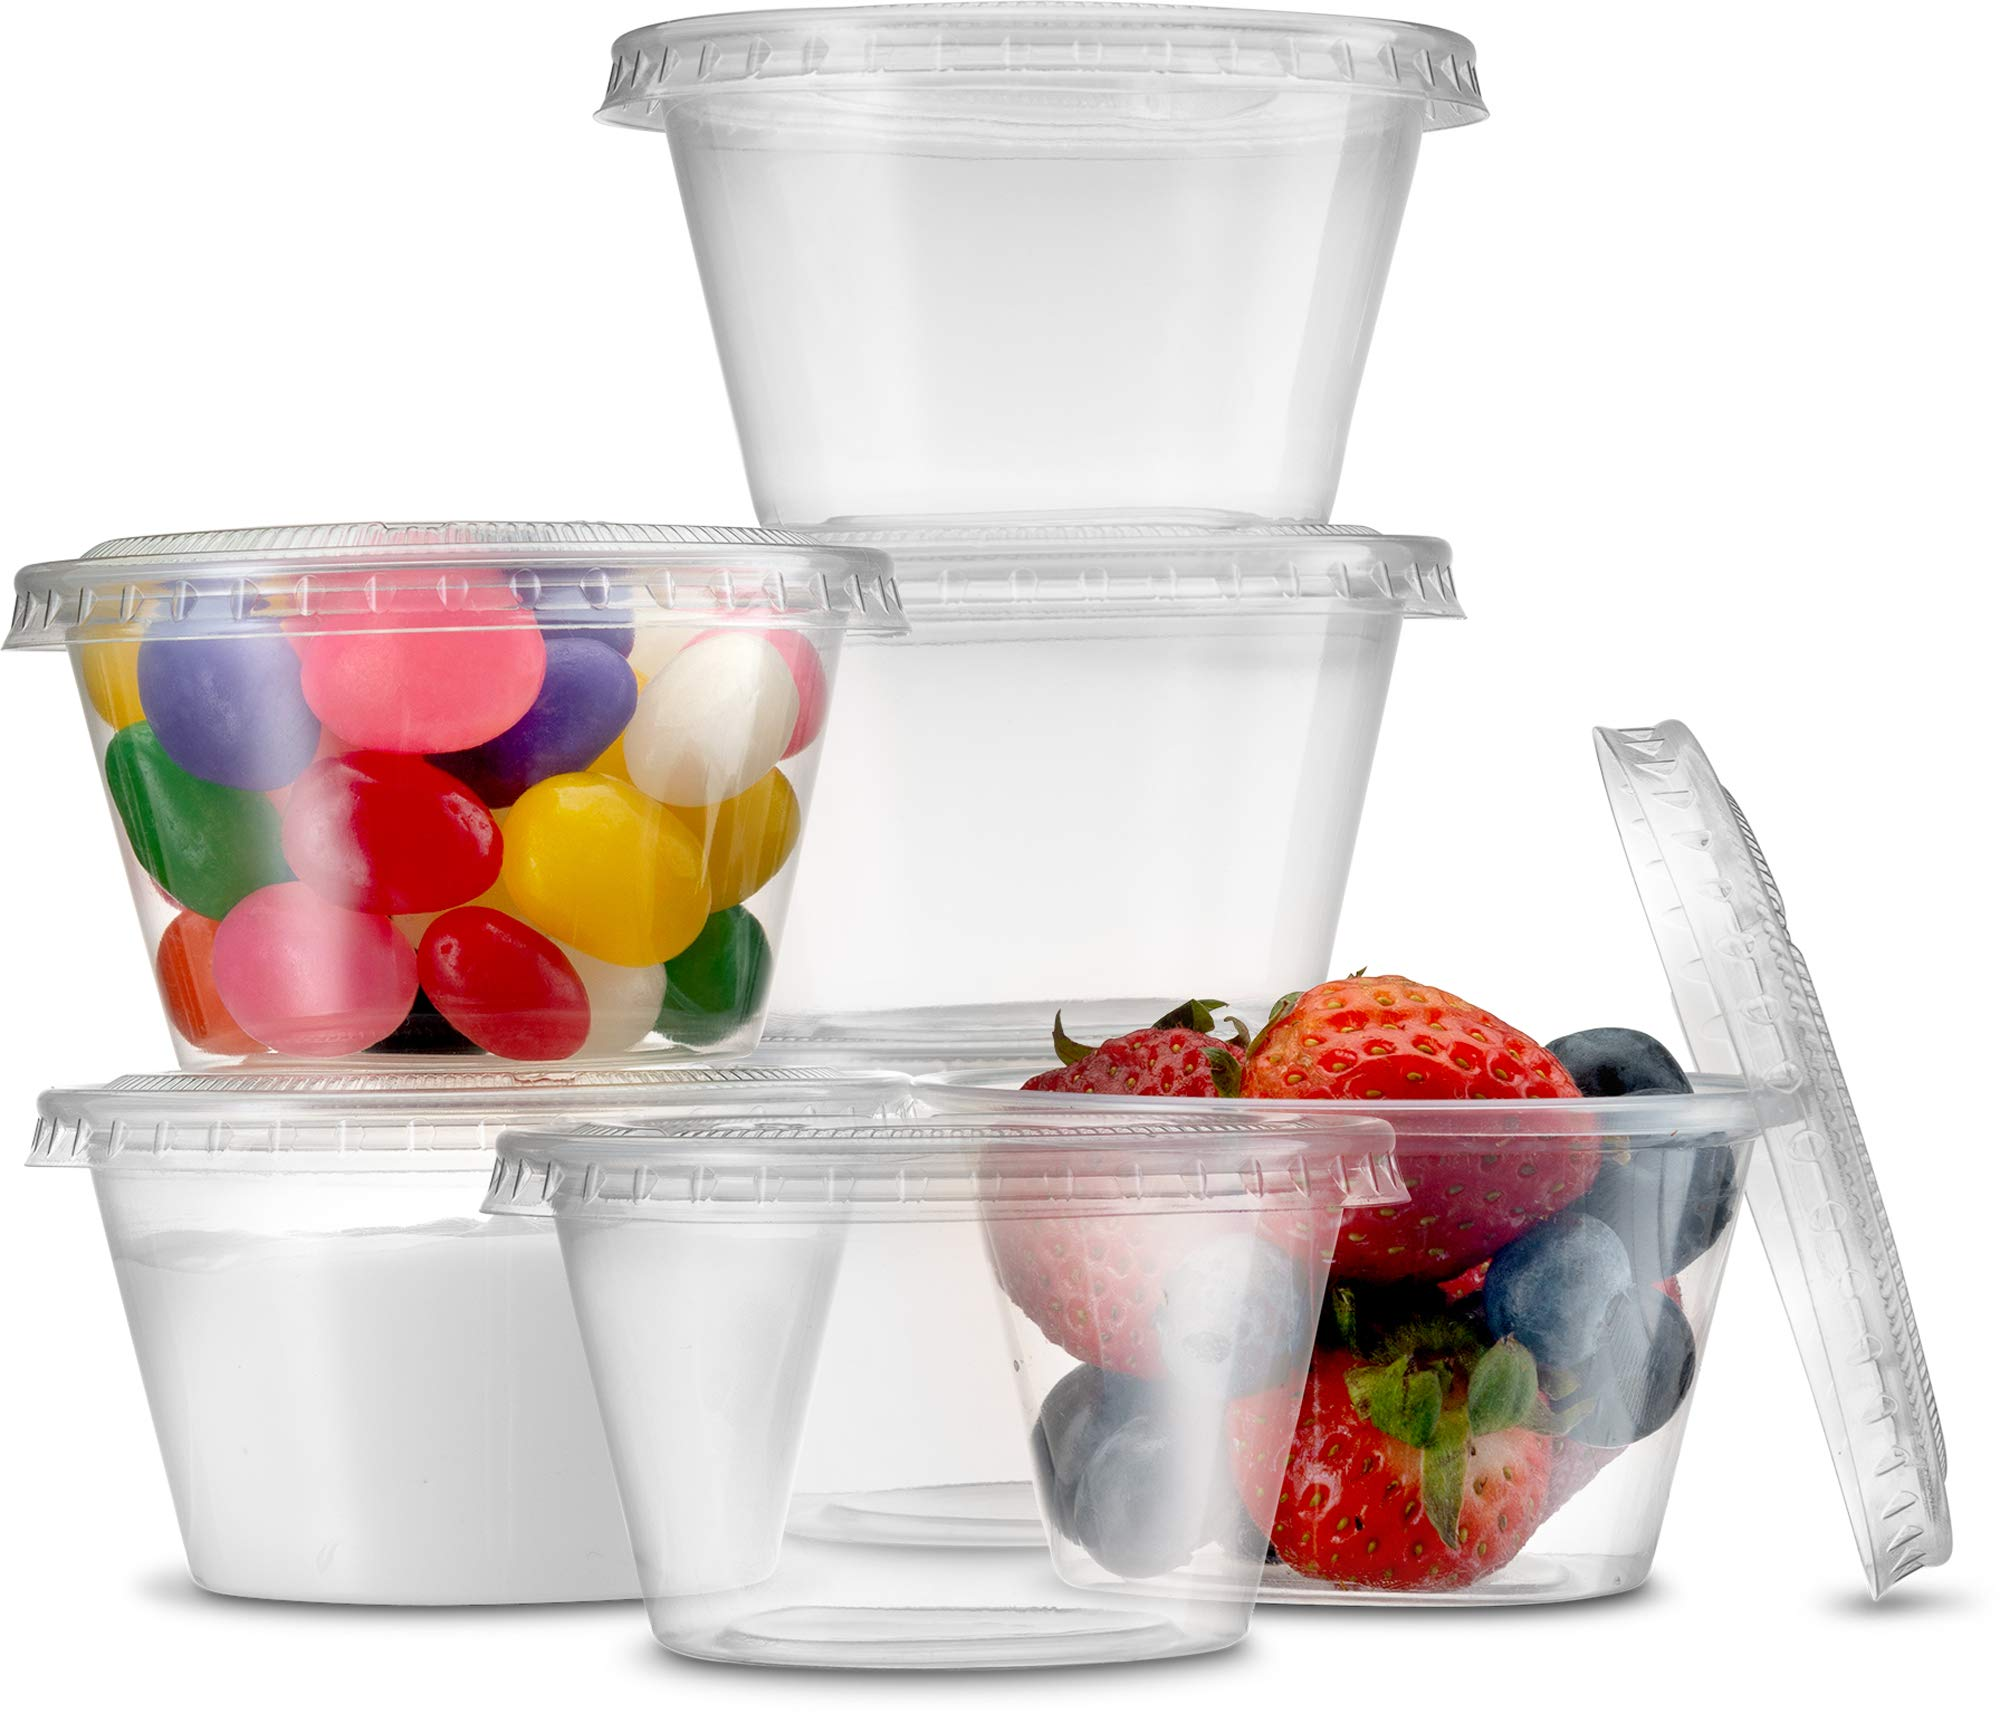 (200 Sets) Sturdy 4 oz. Portion Souffle Cups with Lids - Leak-Resistant, Tight fit, Easy Snap-on Lids - Clear and Fully Transparent, Disposable Plastic Shot Cups by PACNIC